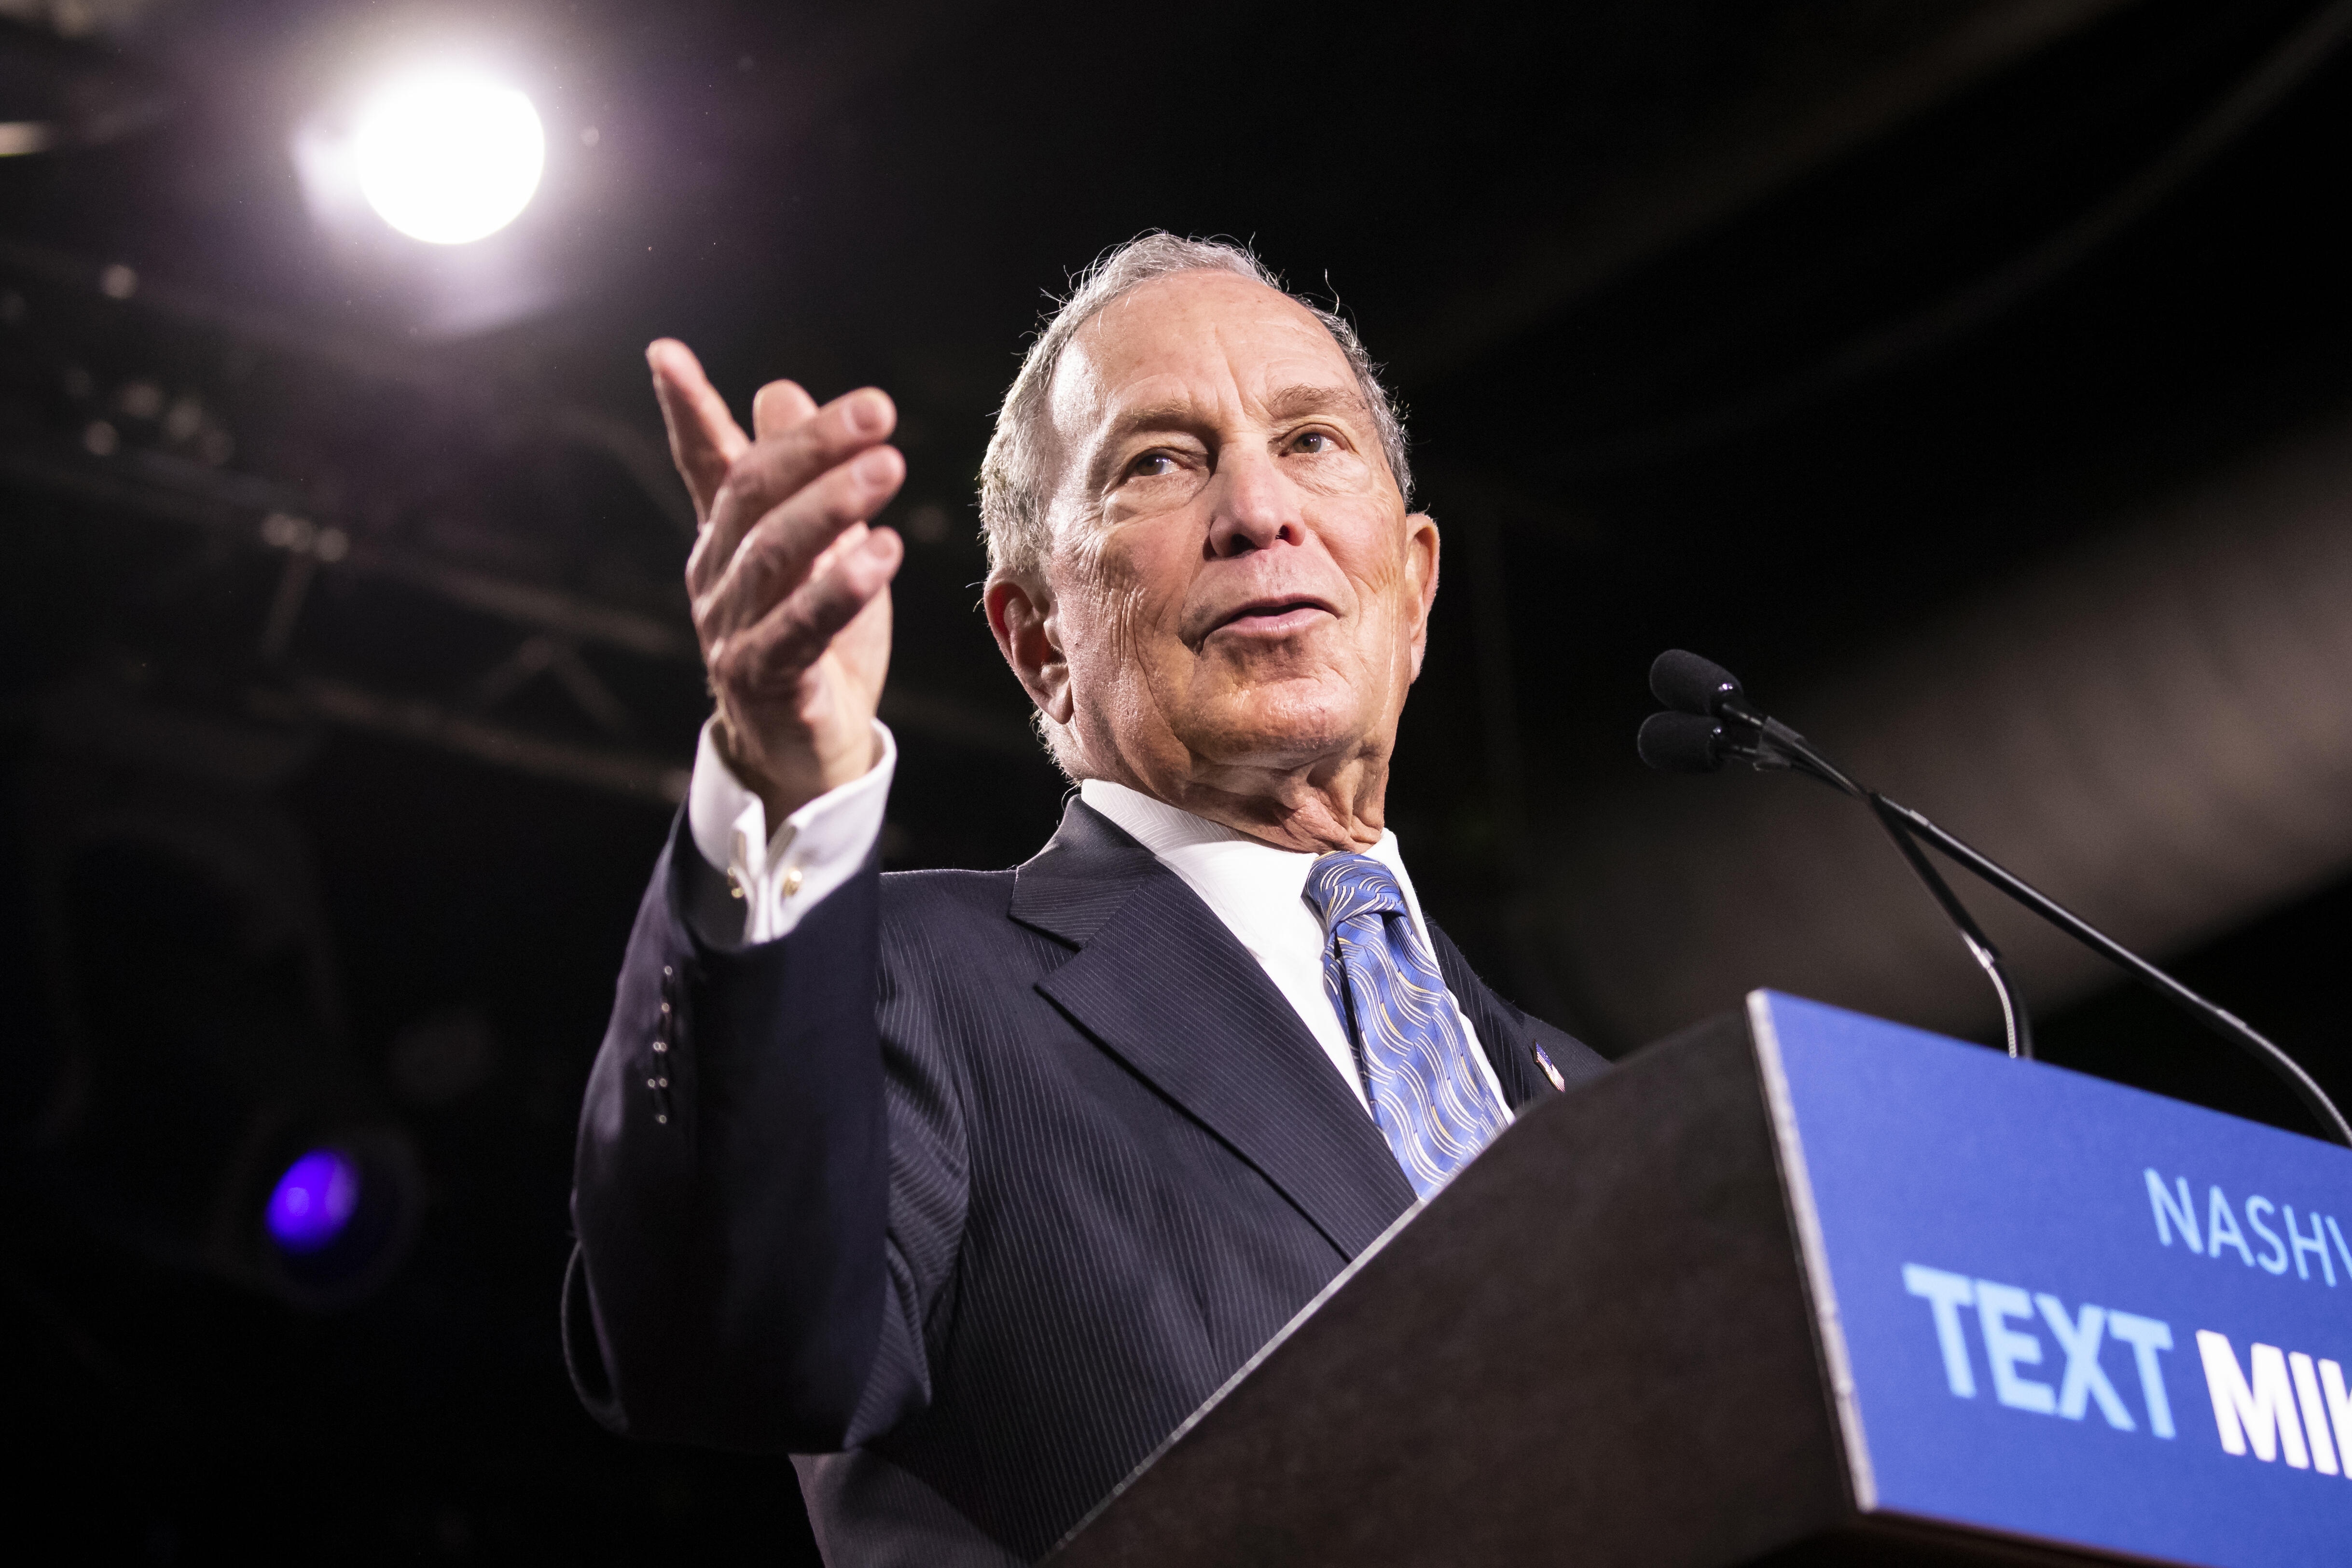 Mike Bloomberg delivers remarks during a campaign rally on Feb. 12,  in Nashville.